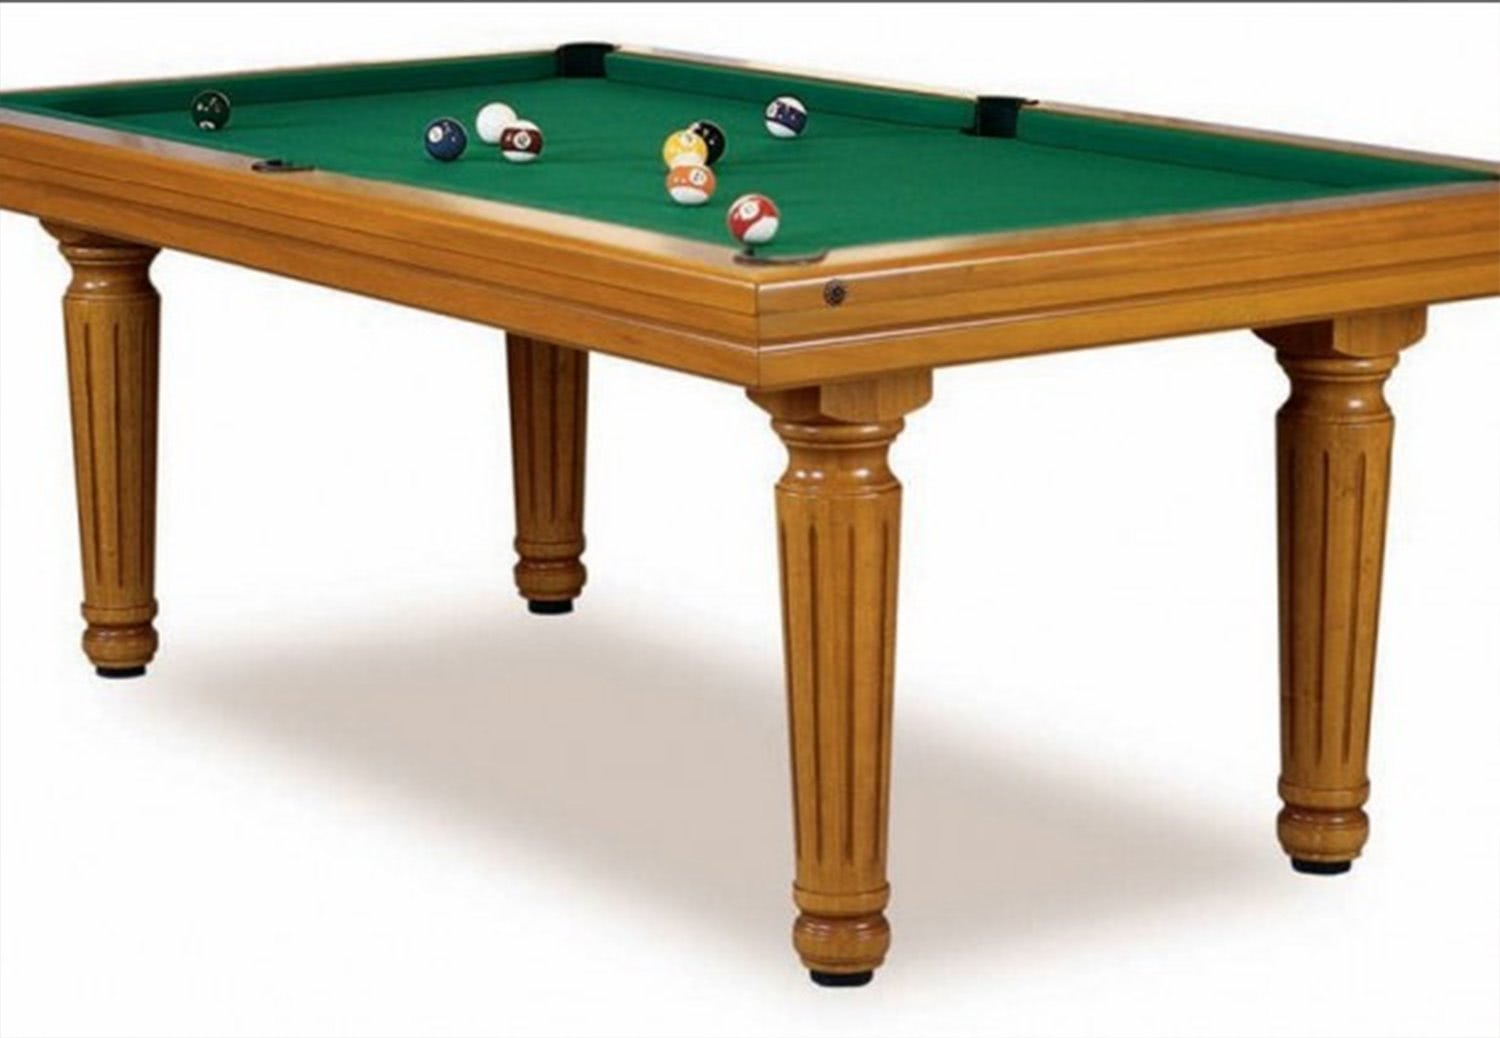 billard toulet excellence pool table 6 ft 7 ft 8 ft. Black Bedroom Furniture Sets. Home Design Ideas